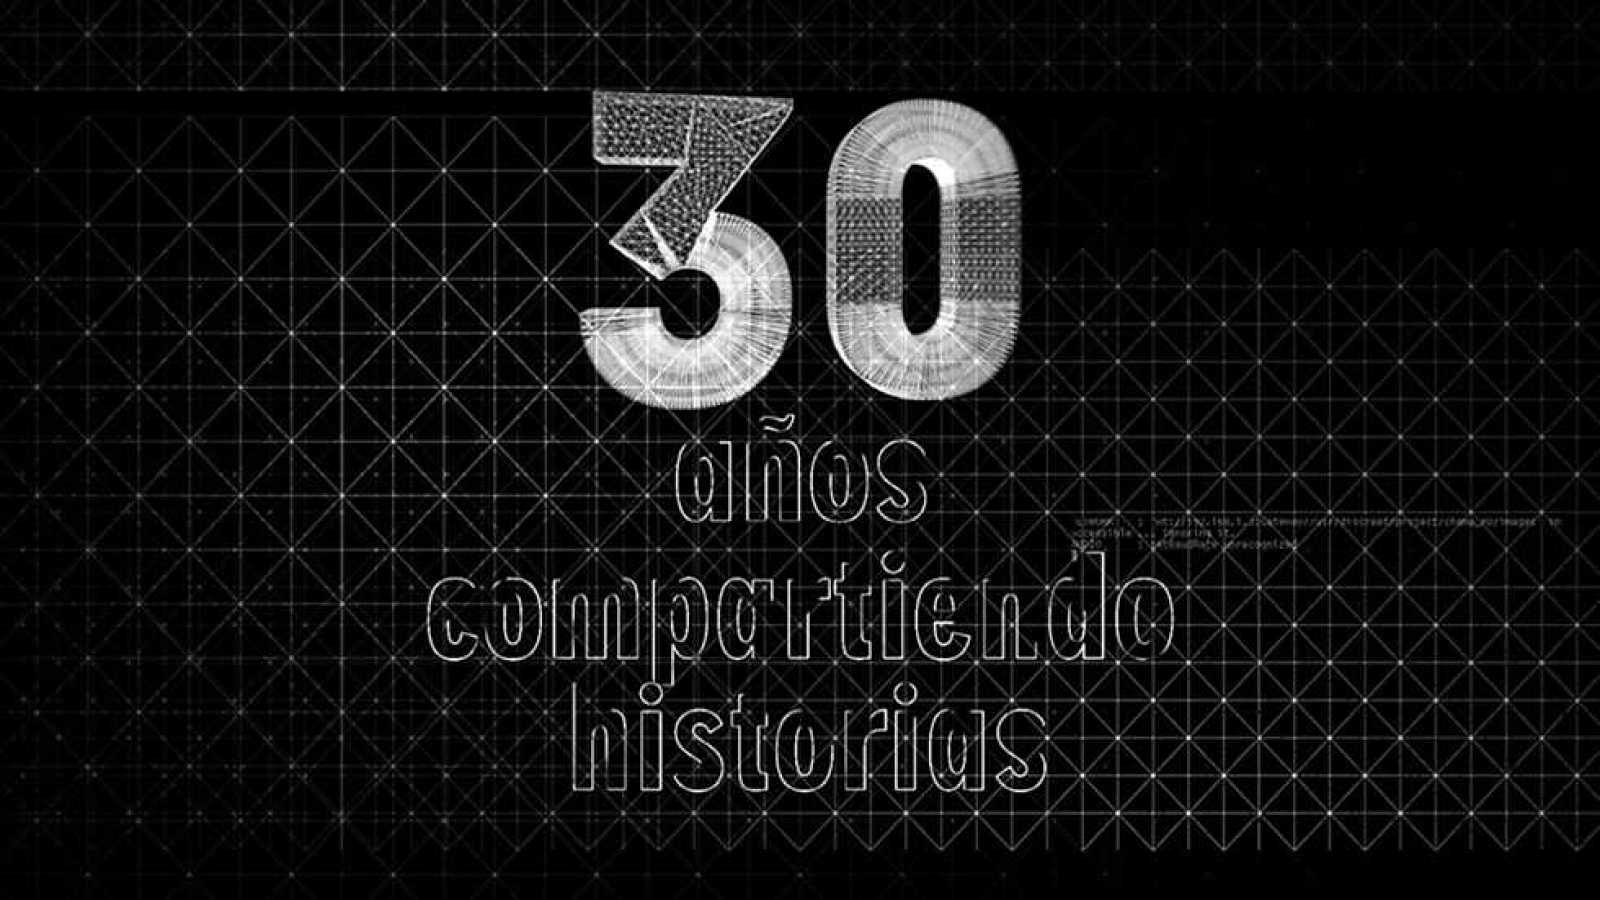 Documentos TV - 30 años compartiendo historias - RTVE.es